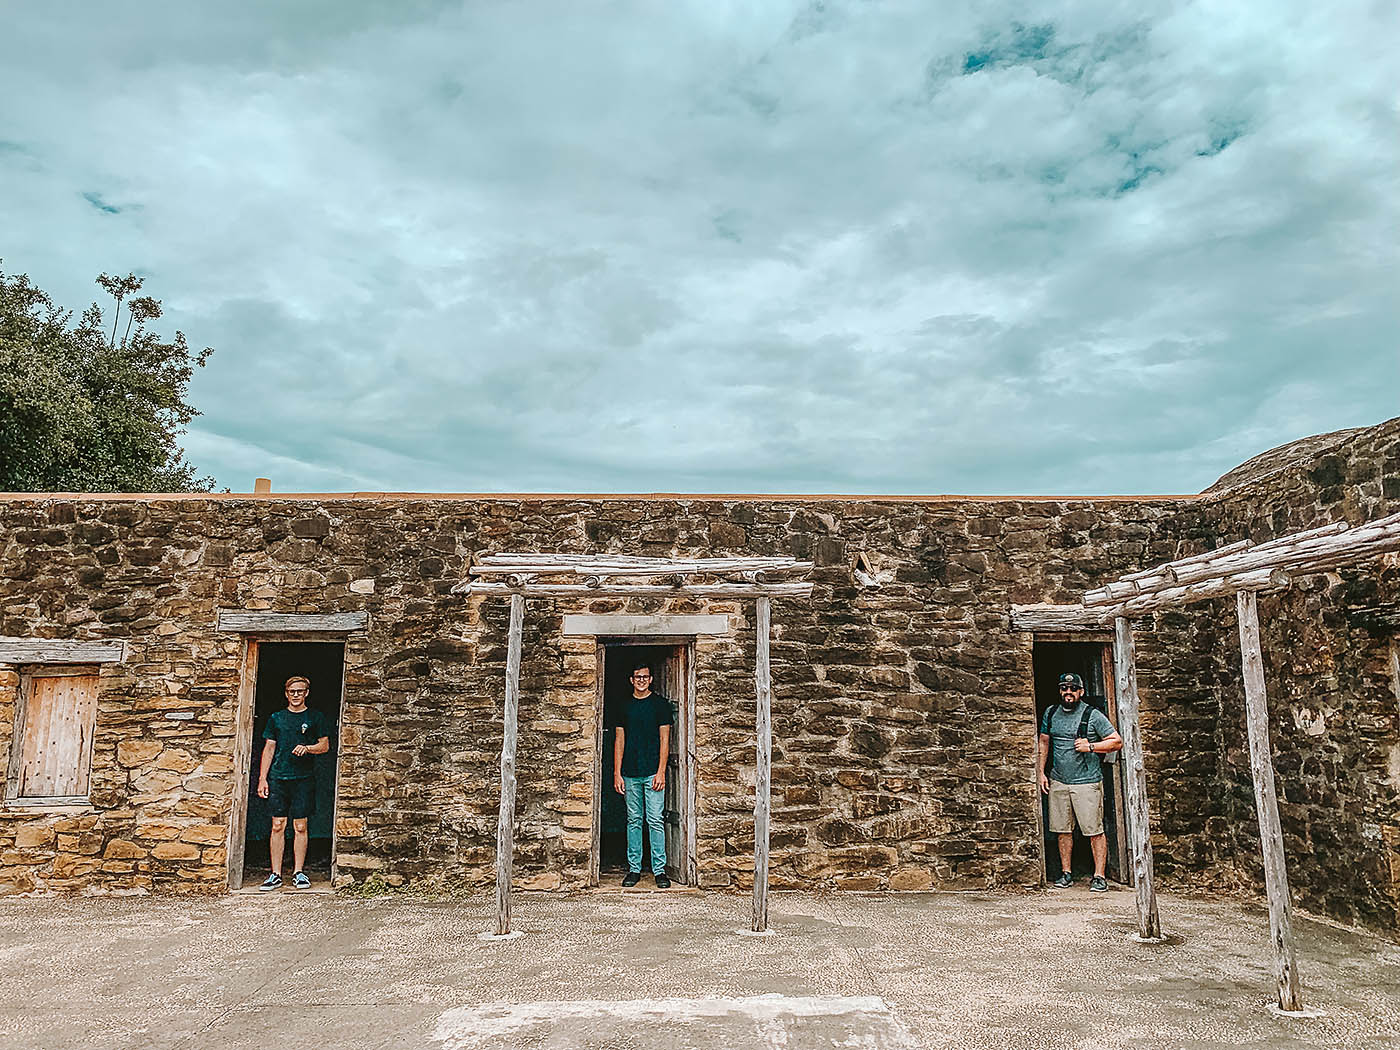 A father and two teenaged sons standing in doorways at a San Antonio mission